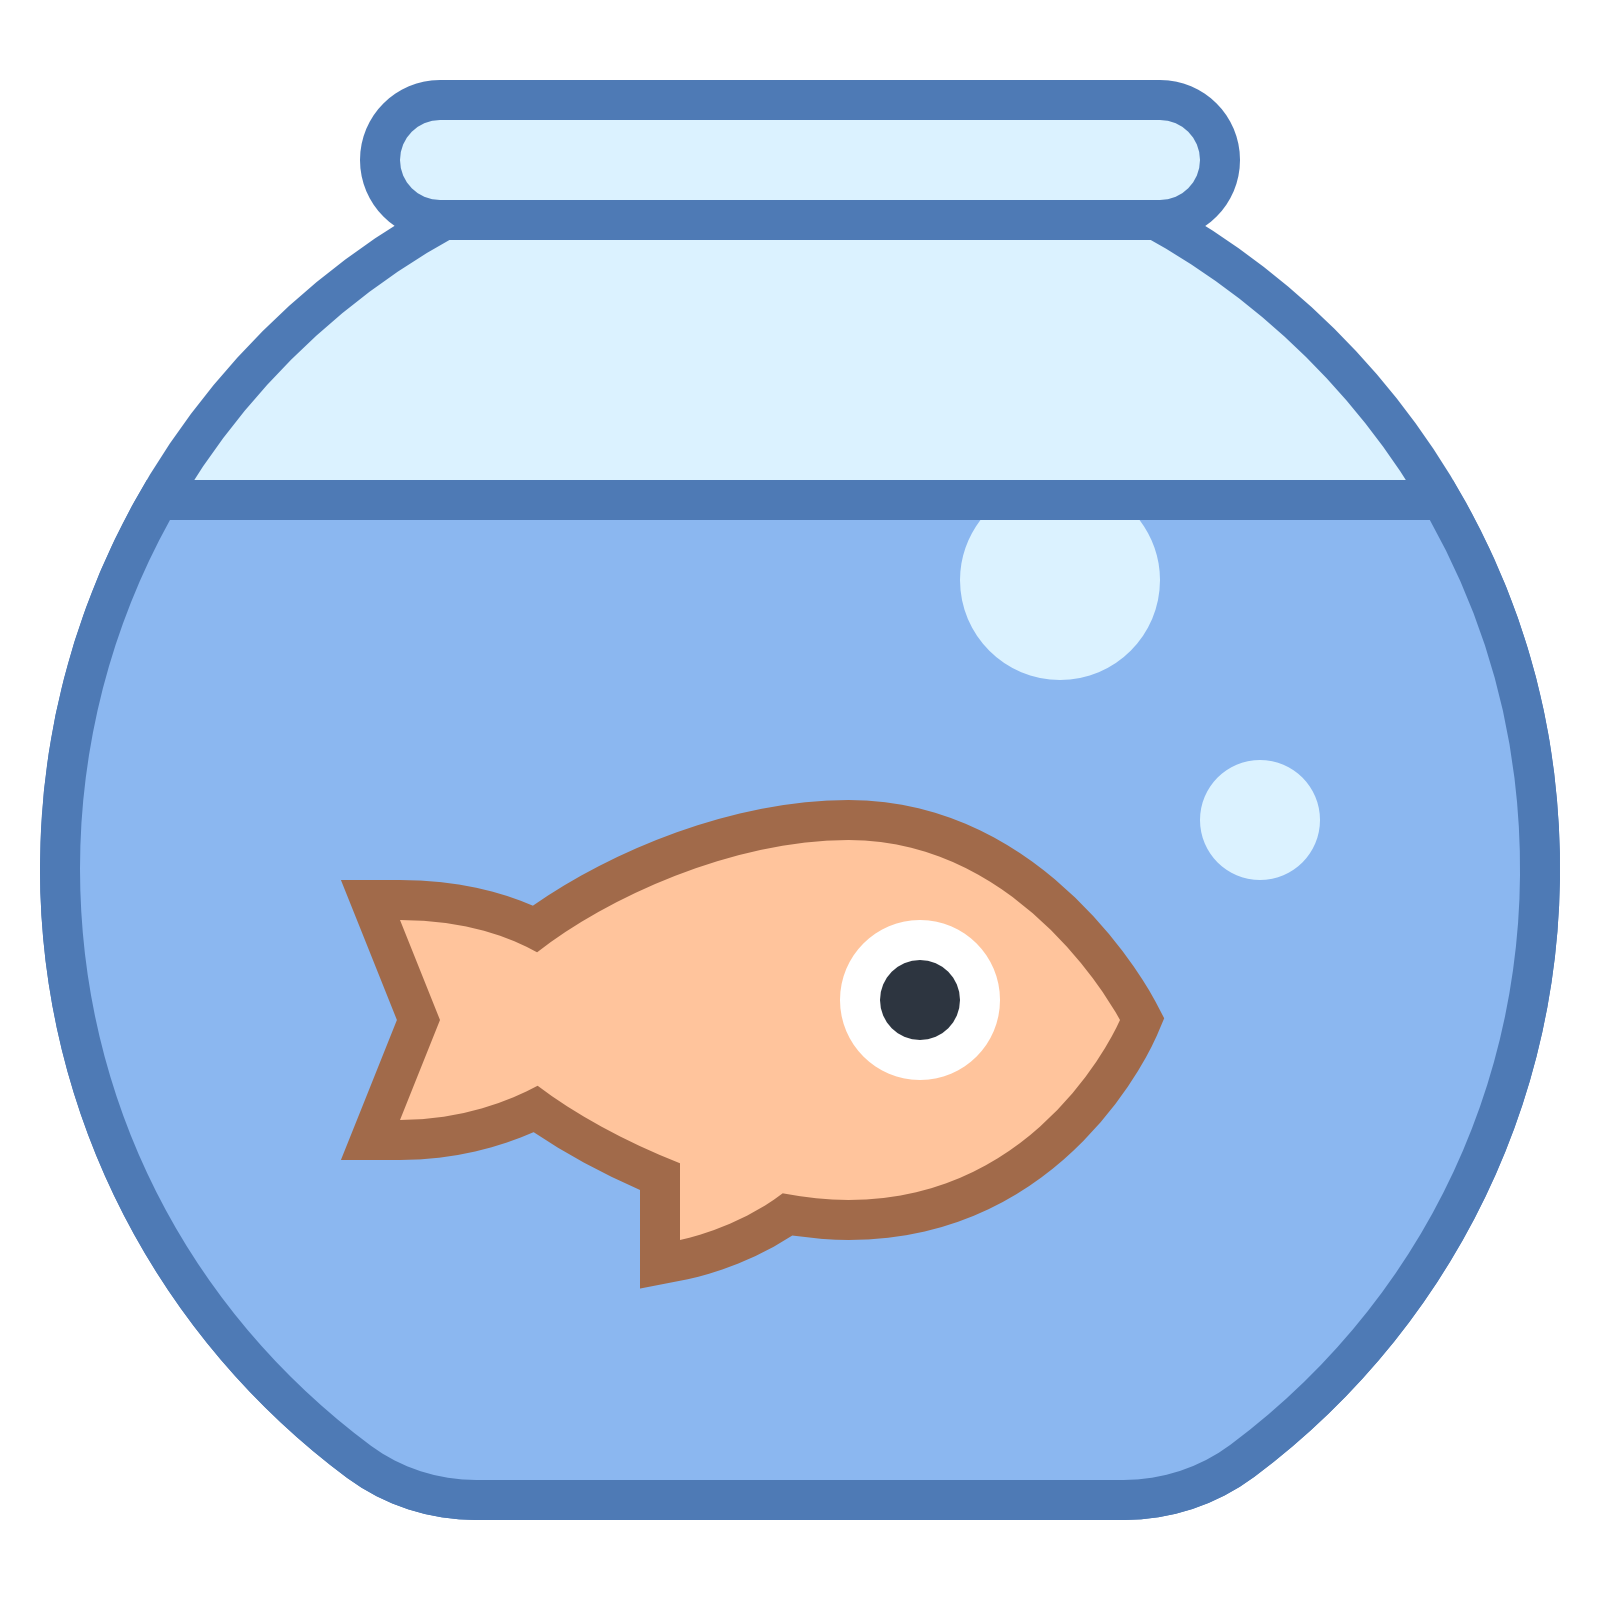 collection of png. Fish in a tank clipart